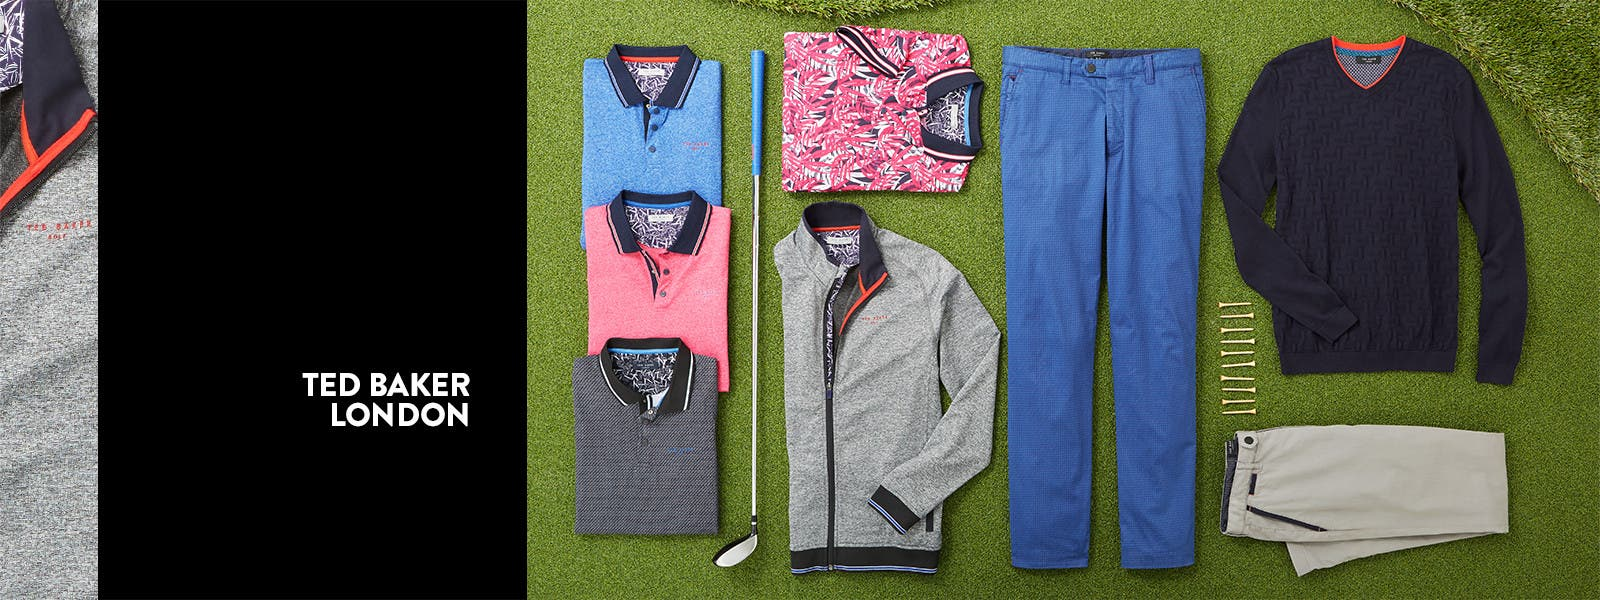 Ted Baker London golf apparel.